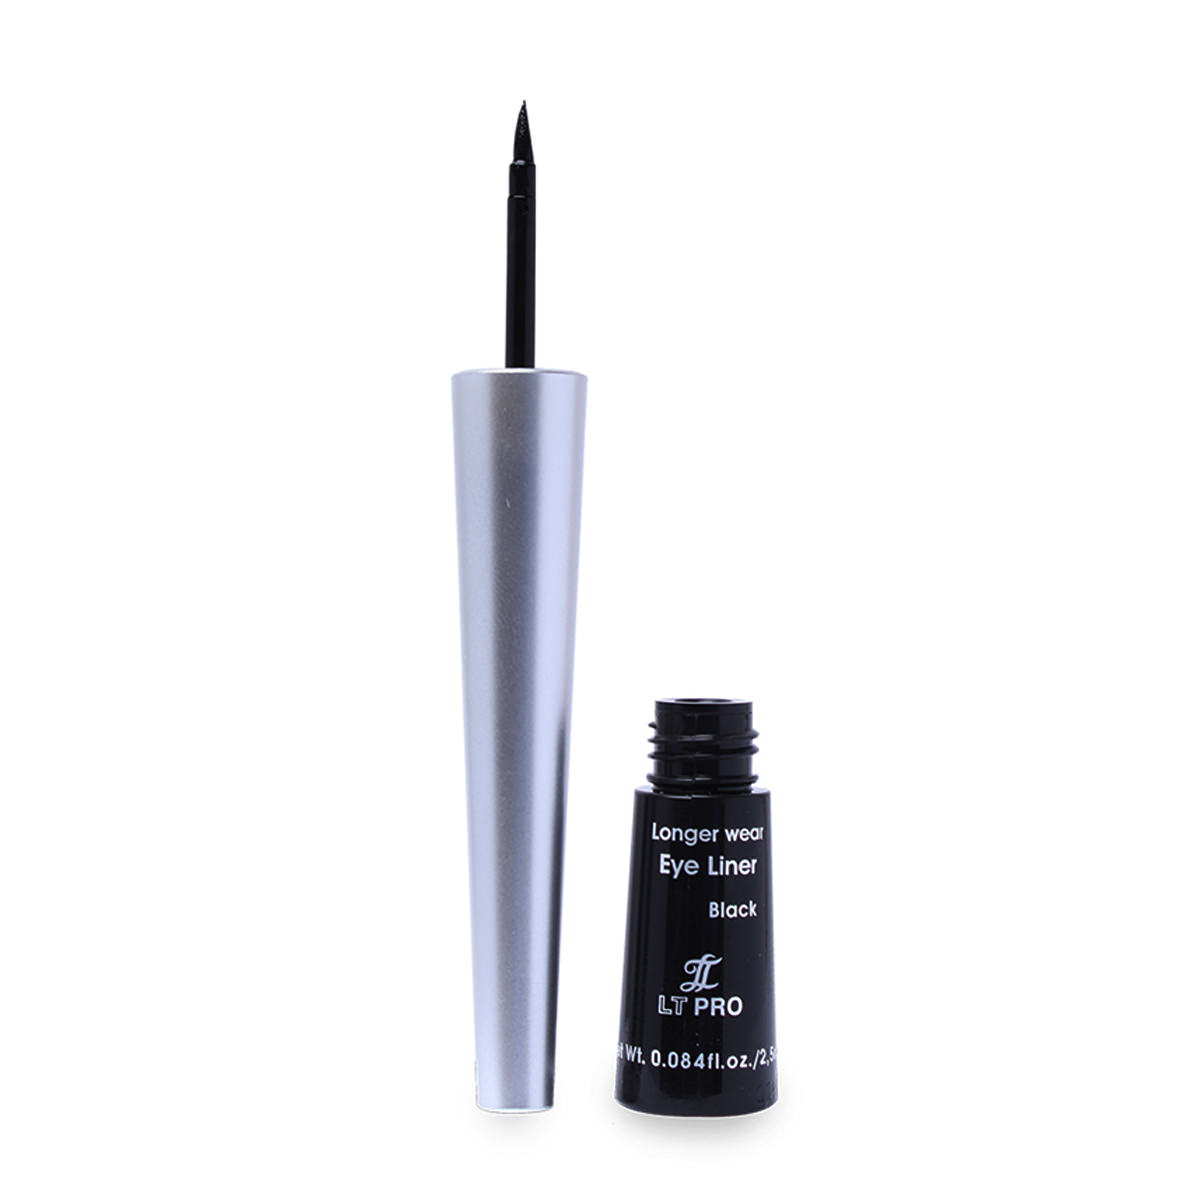 Longer-Wear-Eye-Liner-Liquid-Black-sfw(1)